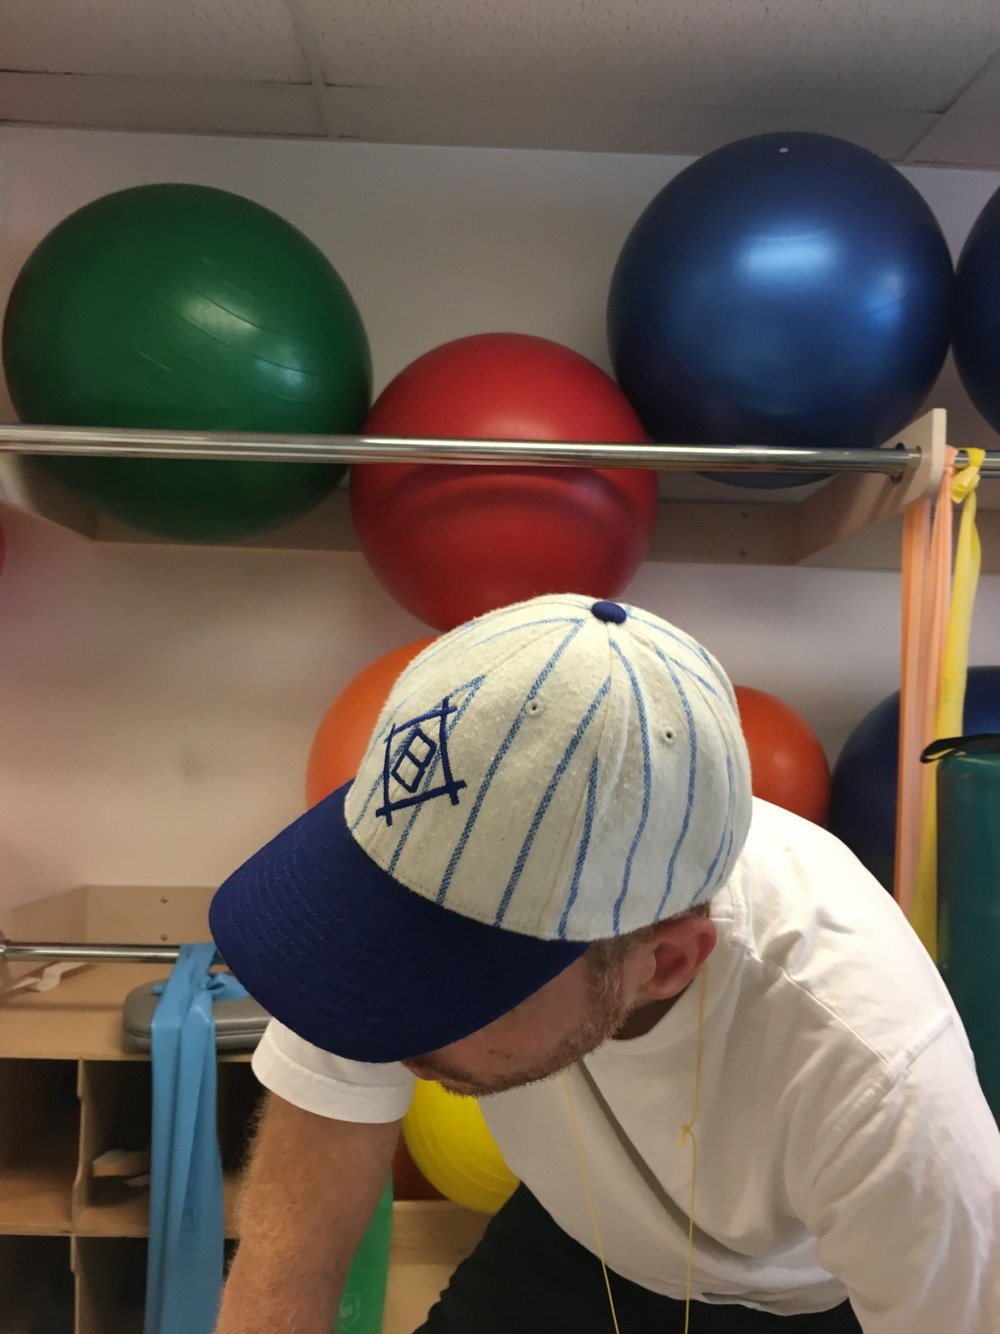 Vintage Brooklyn Dodgers Hat currently in rotation during one of my PT sessions (Photo: William R. Potter)